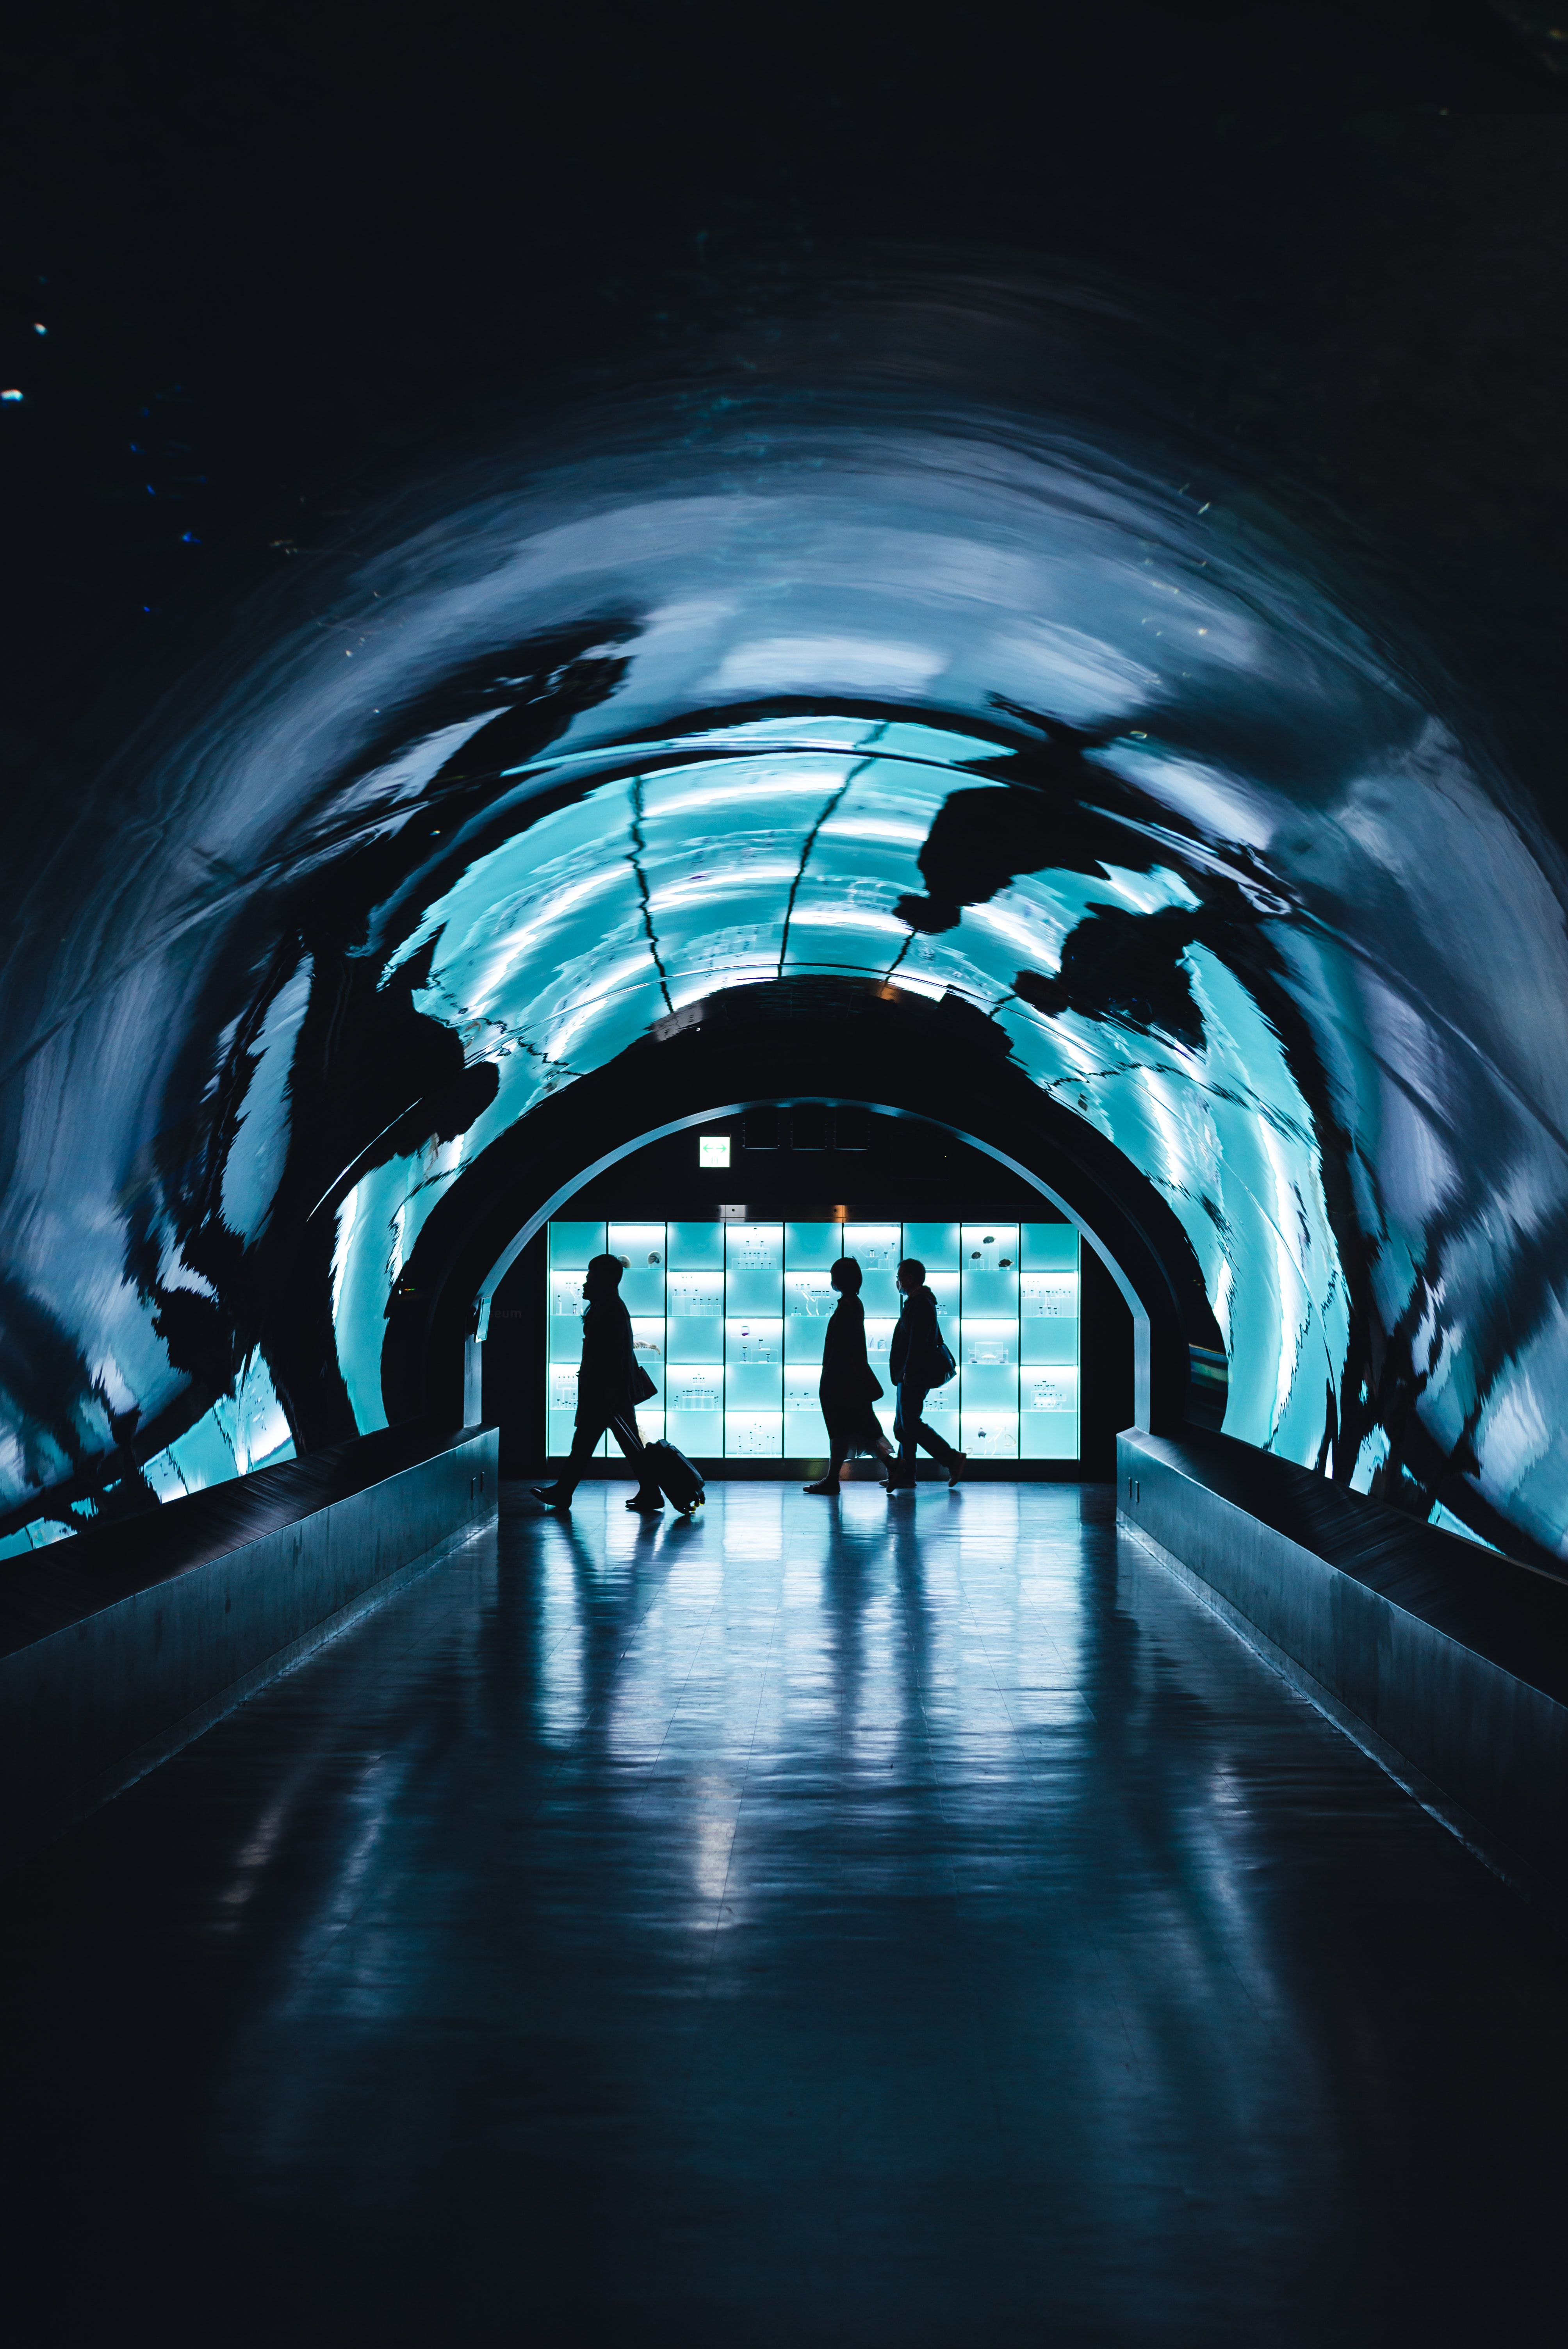 silhouette of three person walking near tunnel